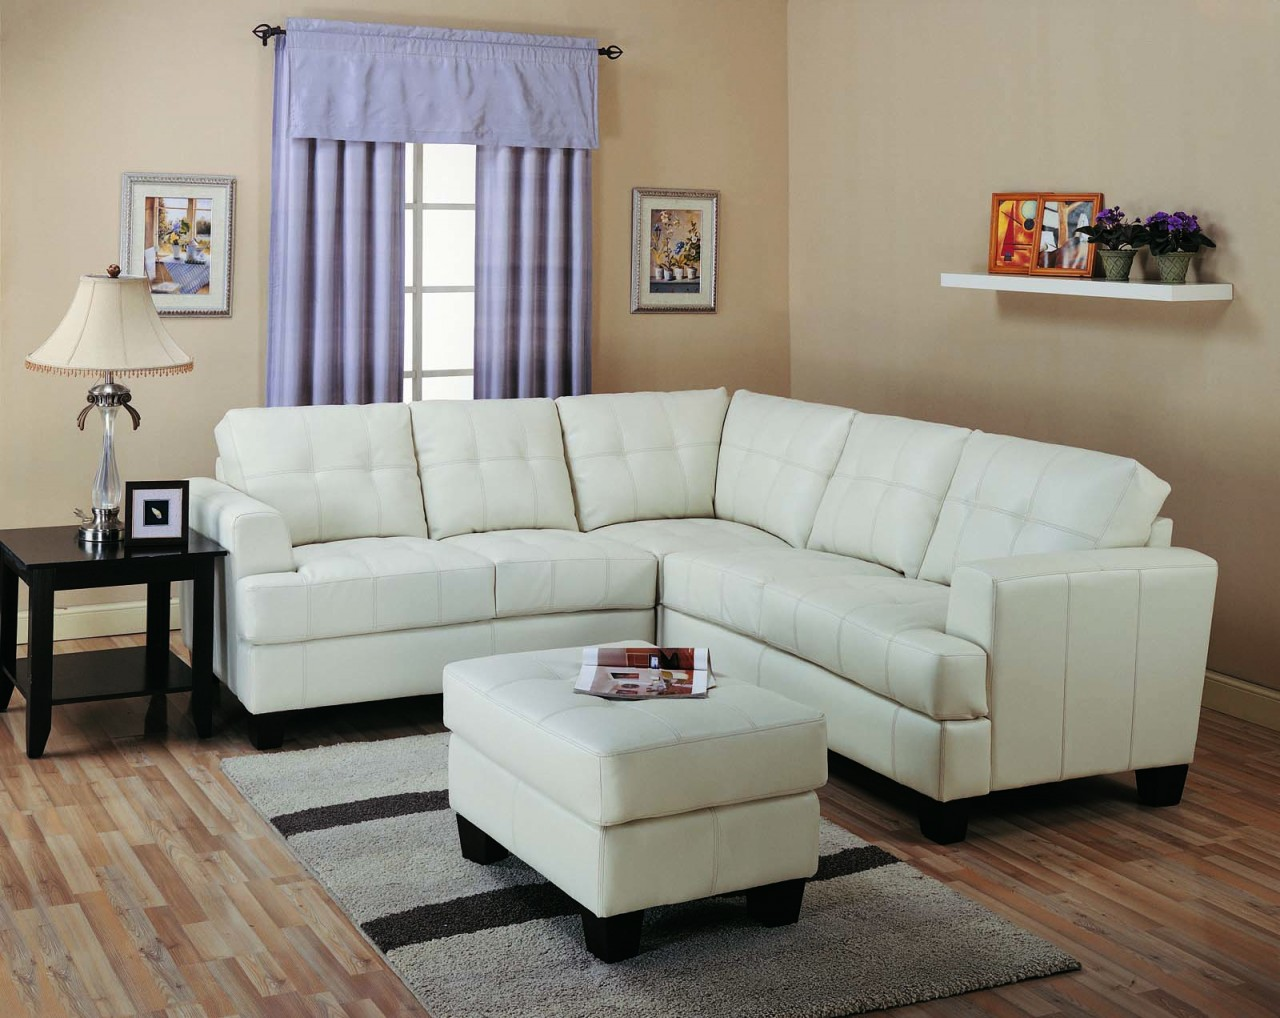 Types of best small sectional couches for small living for Arrange sectional sofa small living room